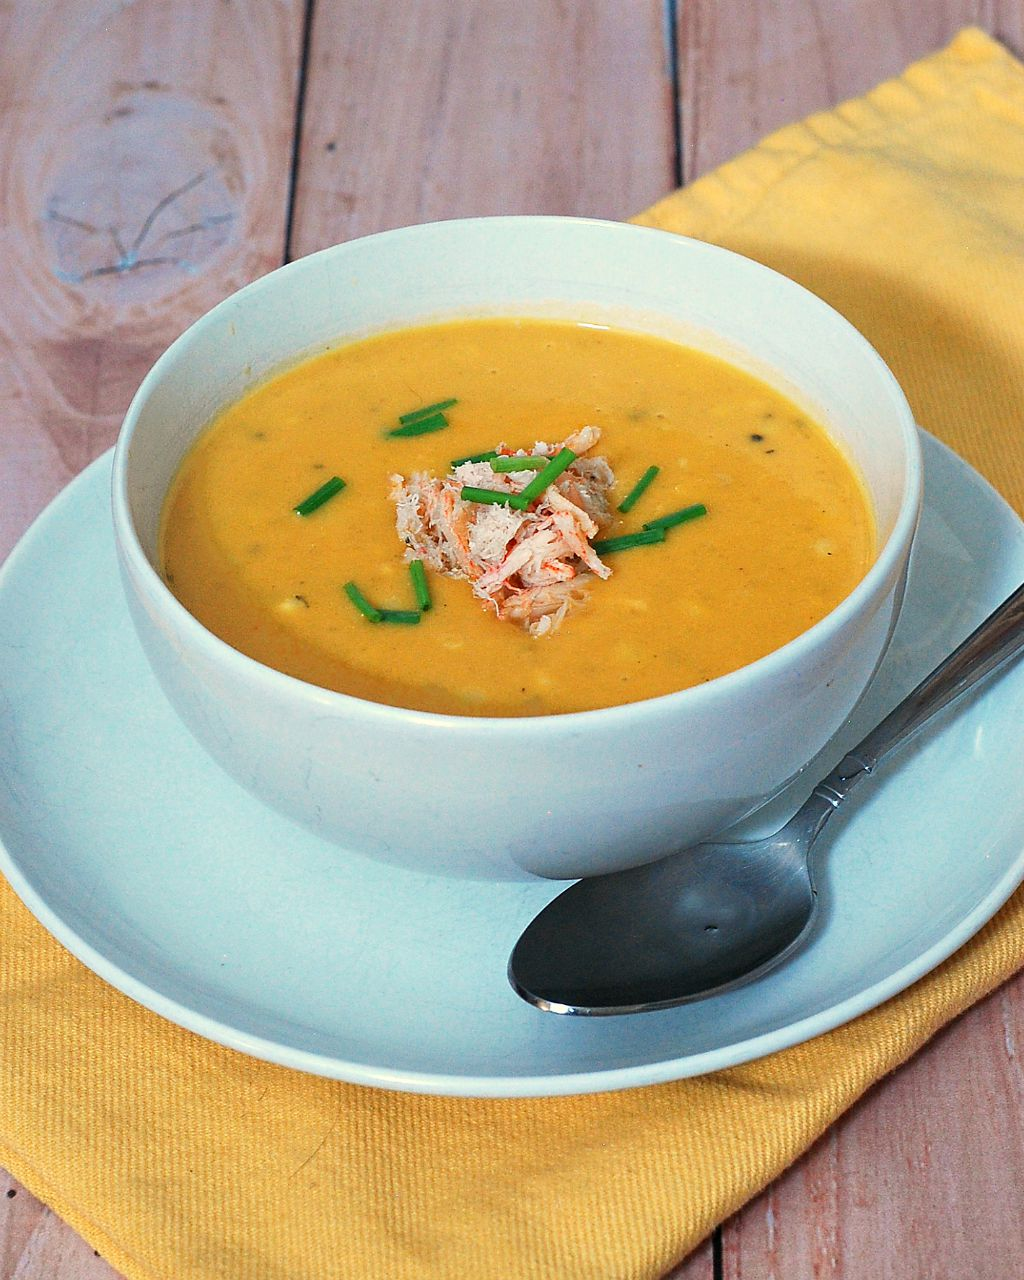 Soup in the summer? Sweet corn shines in this easy, light-but-satisfying summer soup recipe, topped with succulent crabmeat. #SundaySupper TheRedheadBaker.com